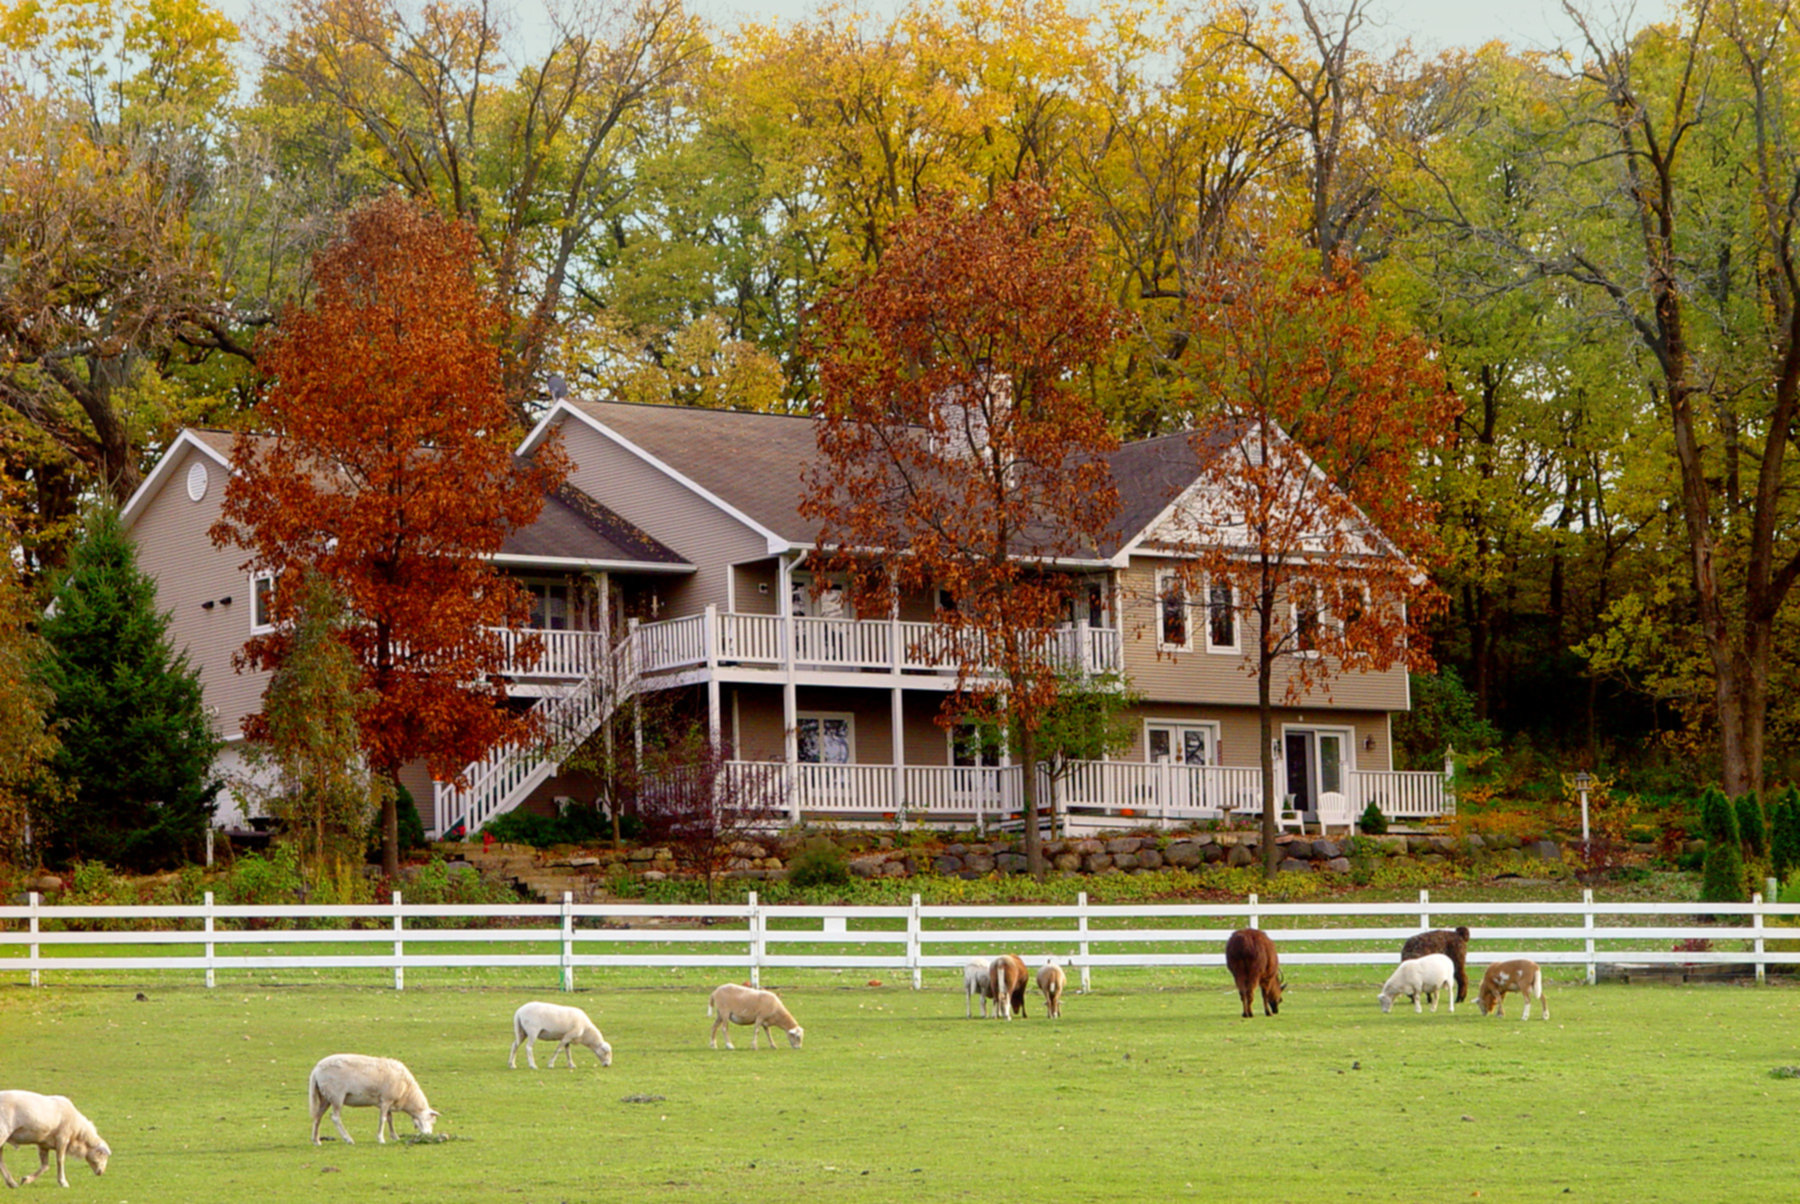 A herd of sheep grazing in front of a house at The Speckled Hen Inn Bed and Breakfast.